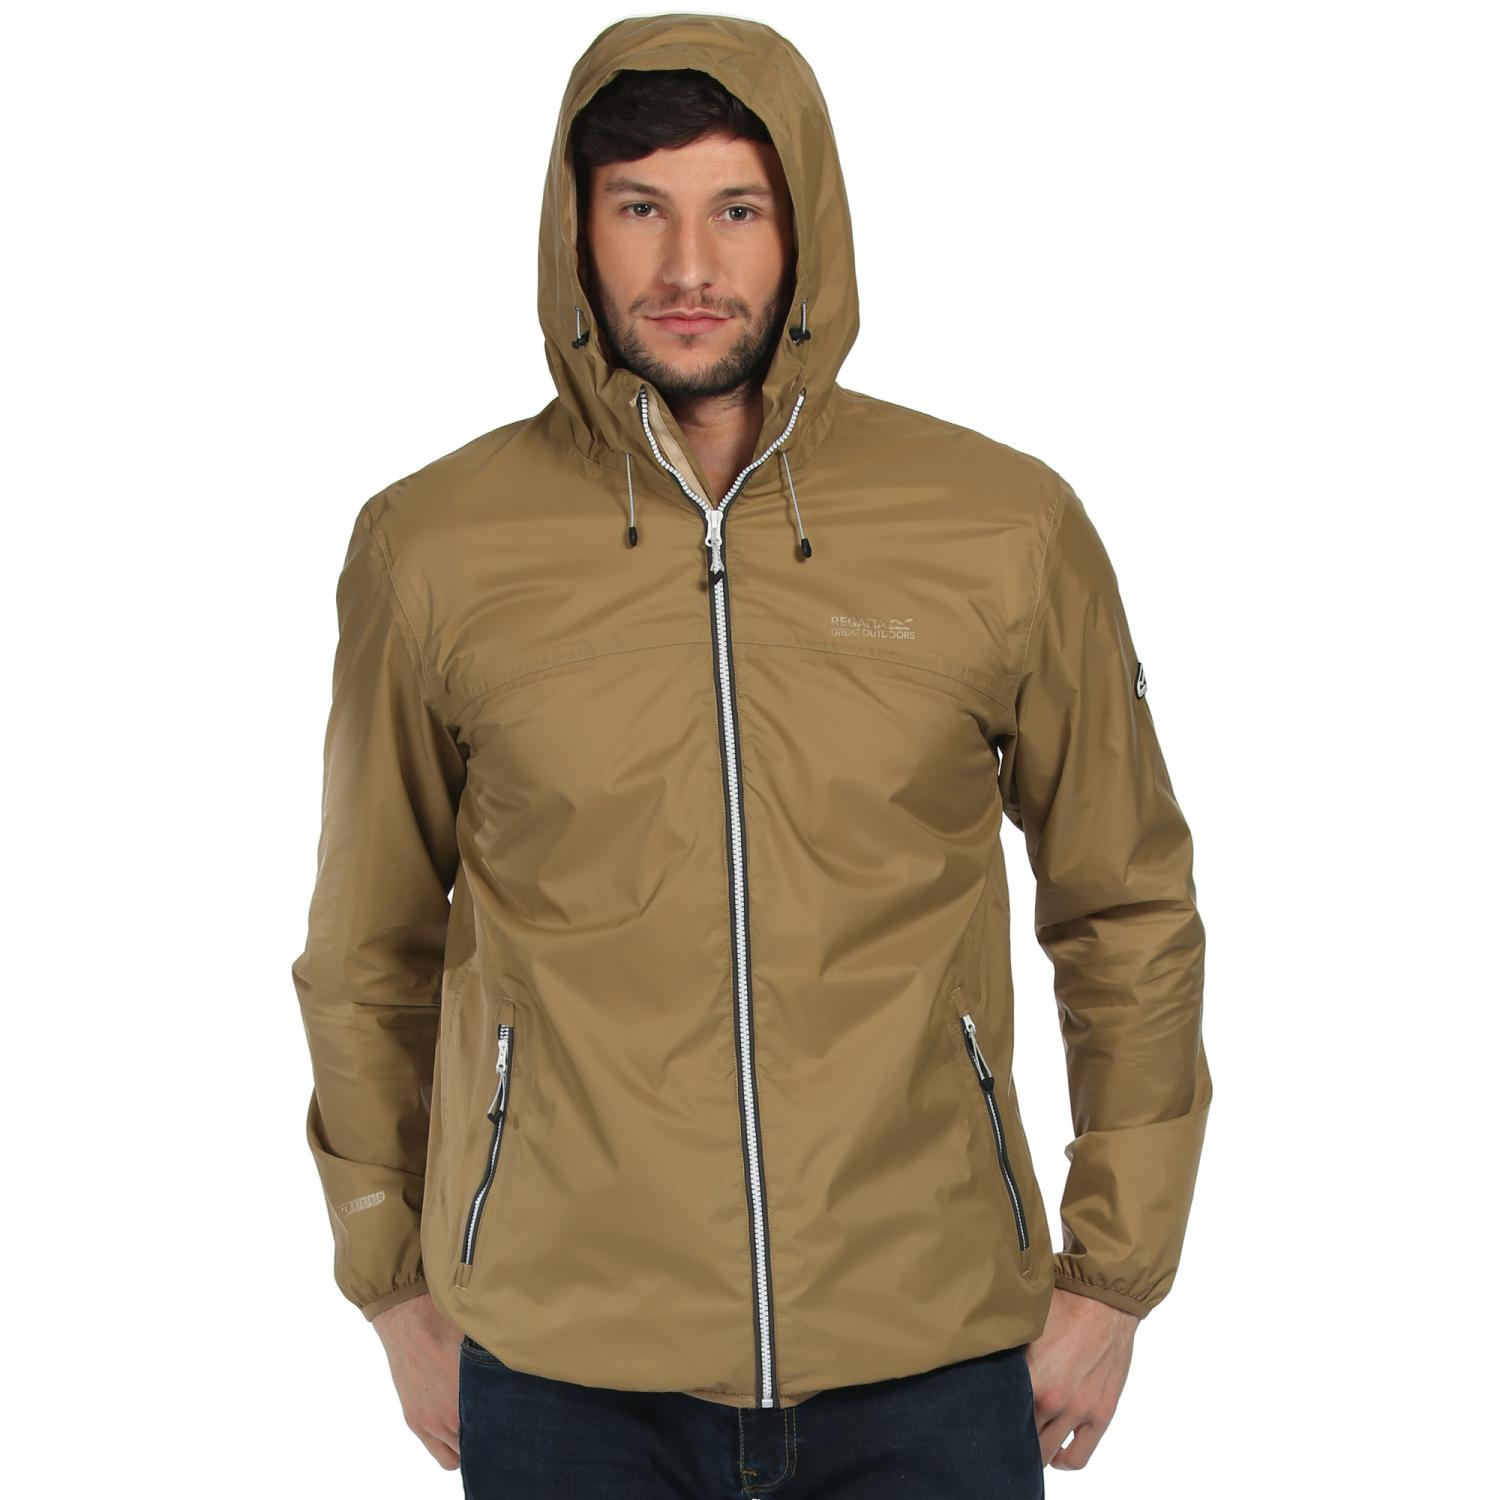 Buy Coats & jackets from the Mens department at Debenhams. You'll find the widest range of Coats & jackets products online and delivered to your door. Shop today!